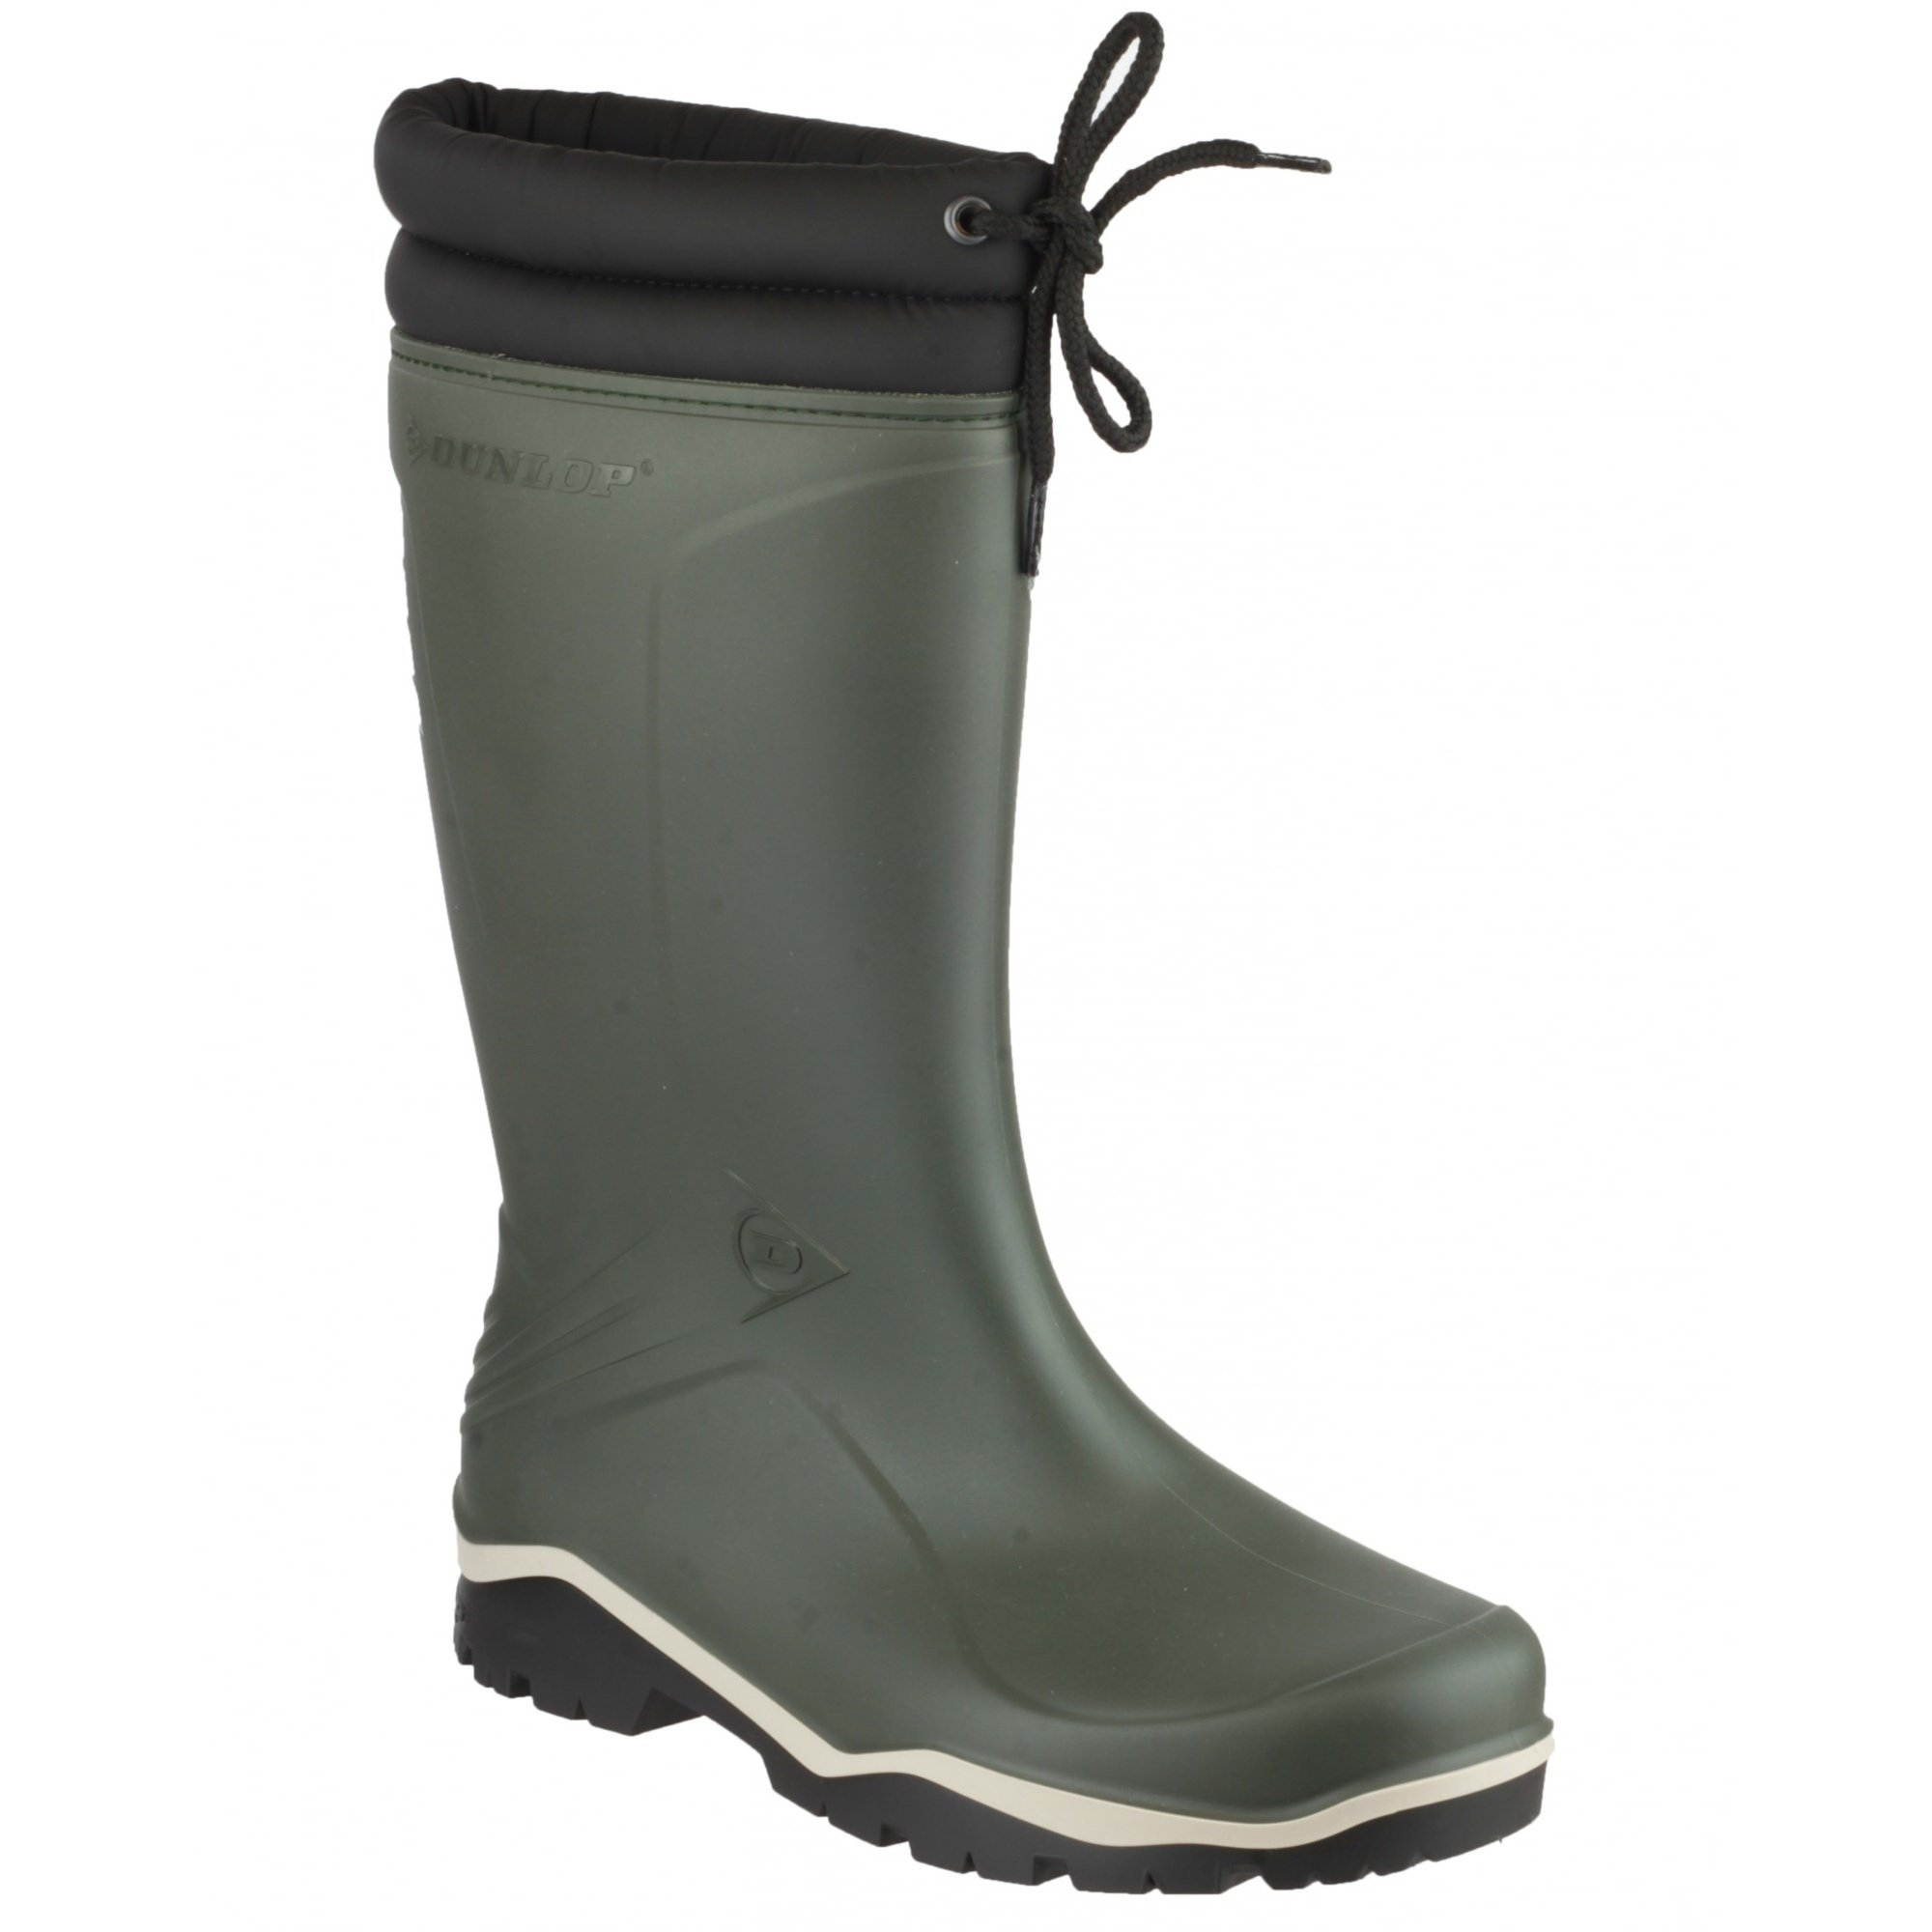 Dunlop Blizzard Boot, without steel toe K486061 Size - 8